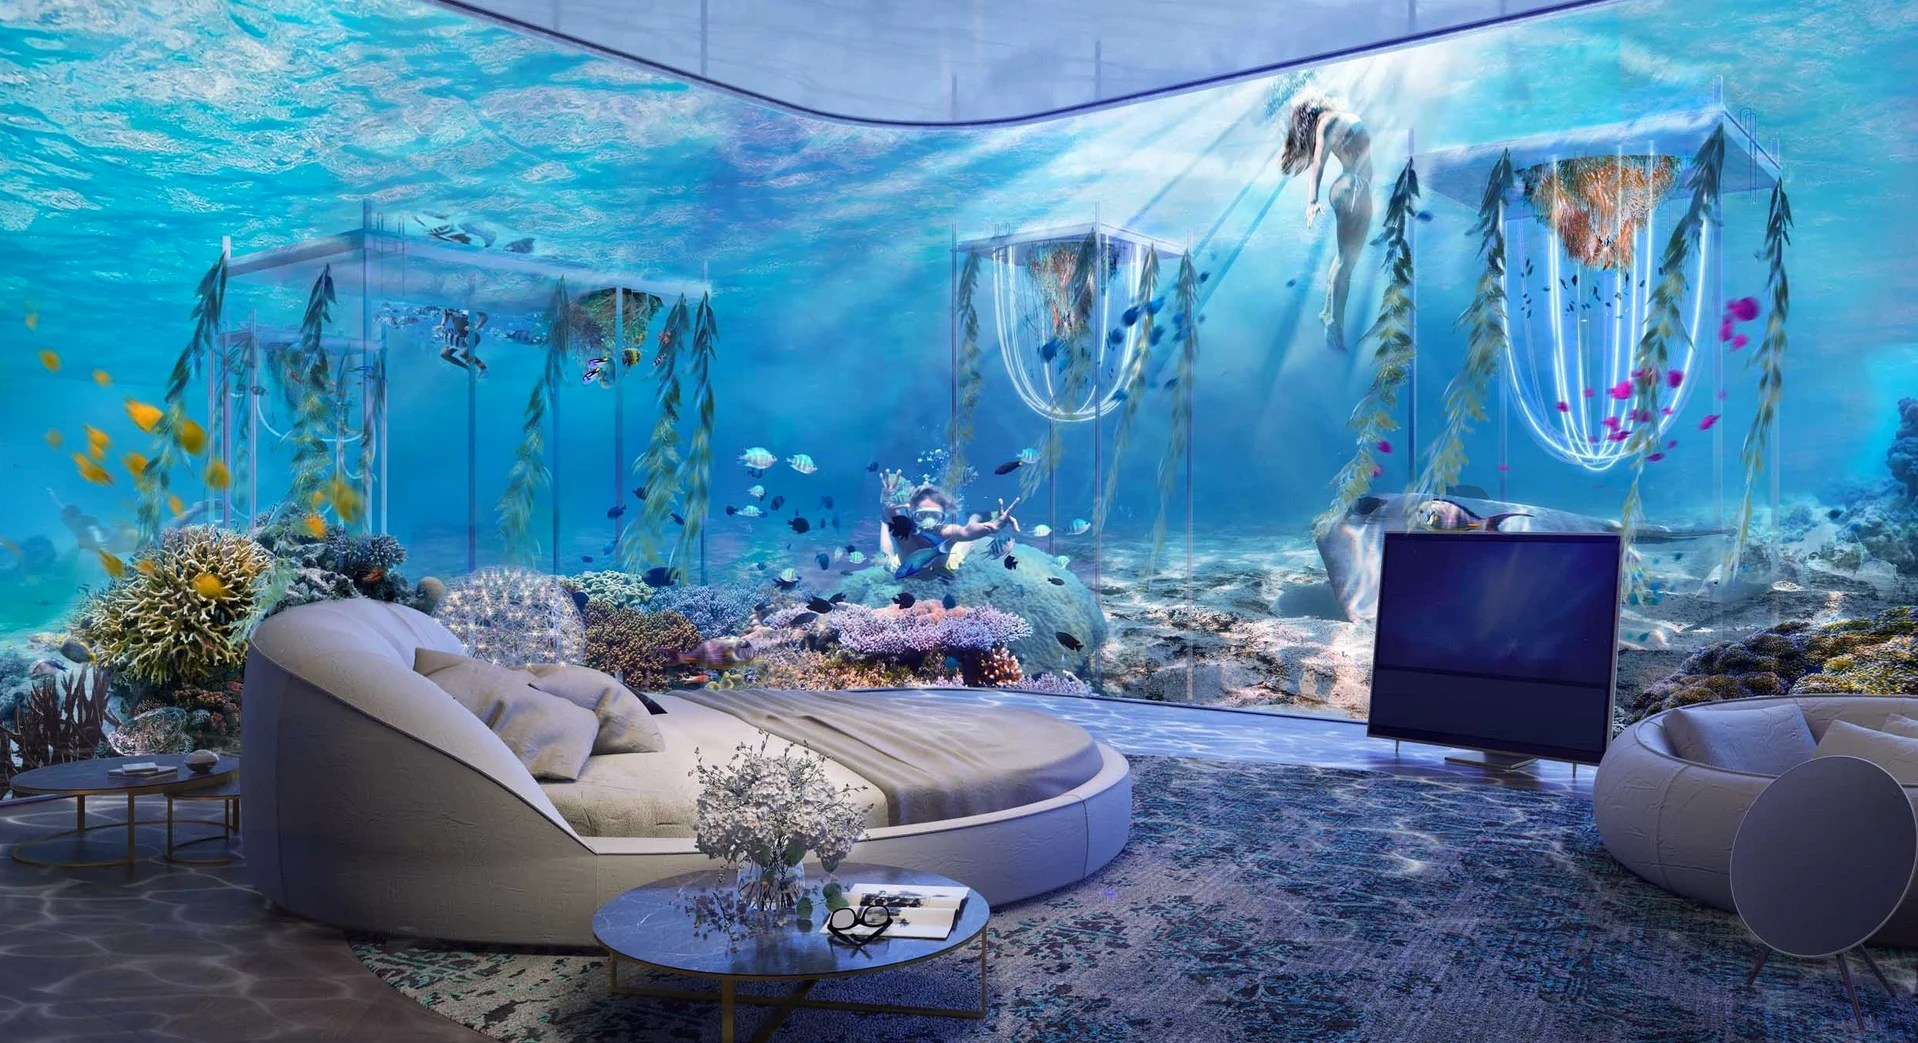 world s first underwater luxury vessel resort coming to dubai the floating venice2